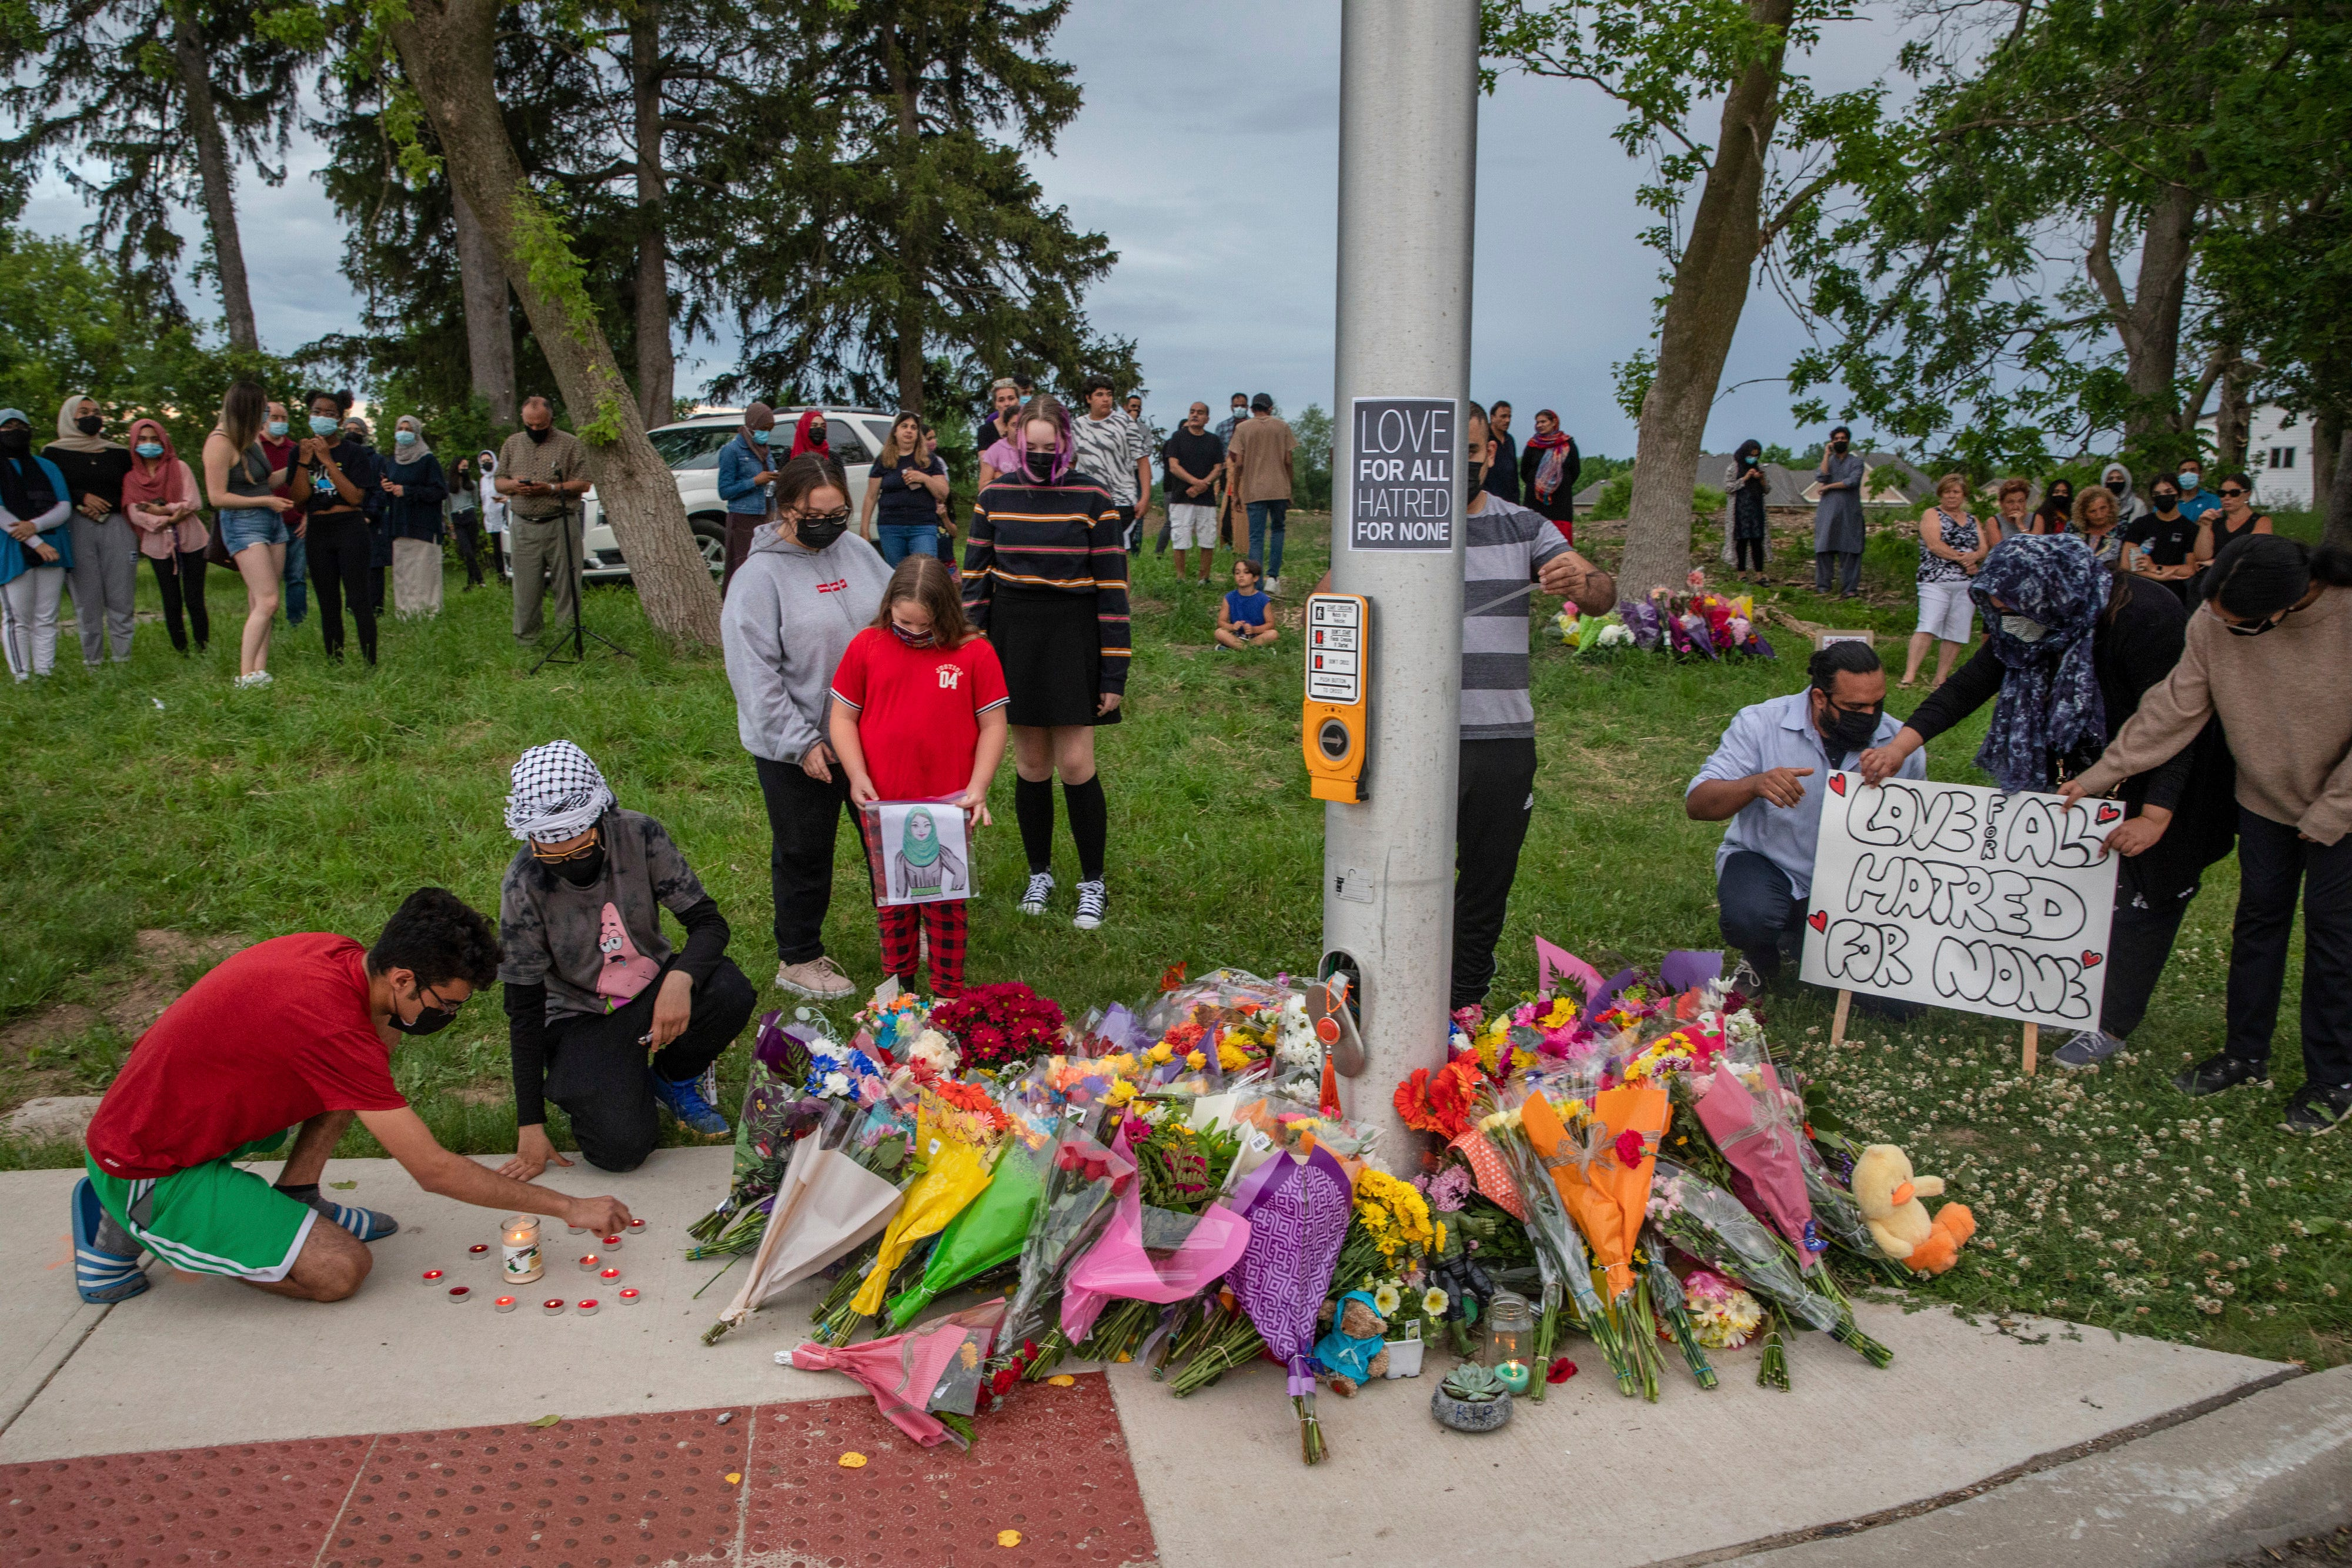 Mass murder : Muslim family targeted, killed in attack motivated by hate, Canadian police say